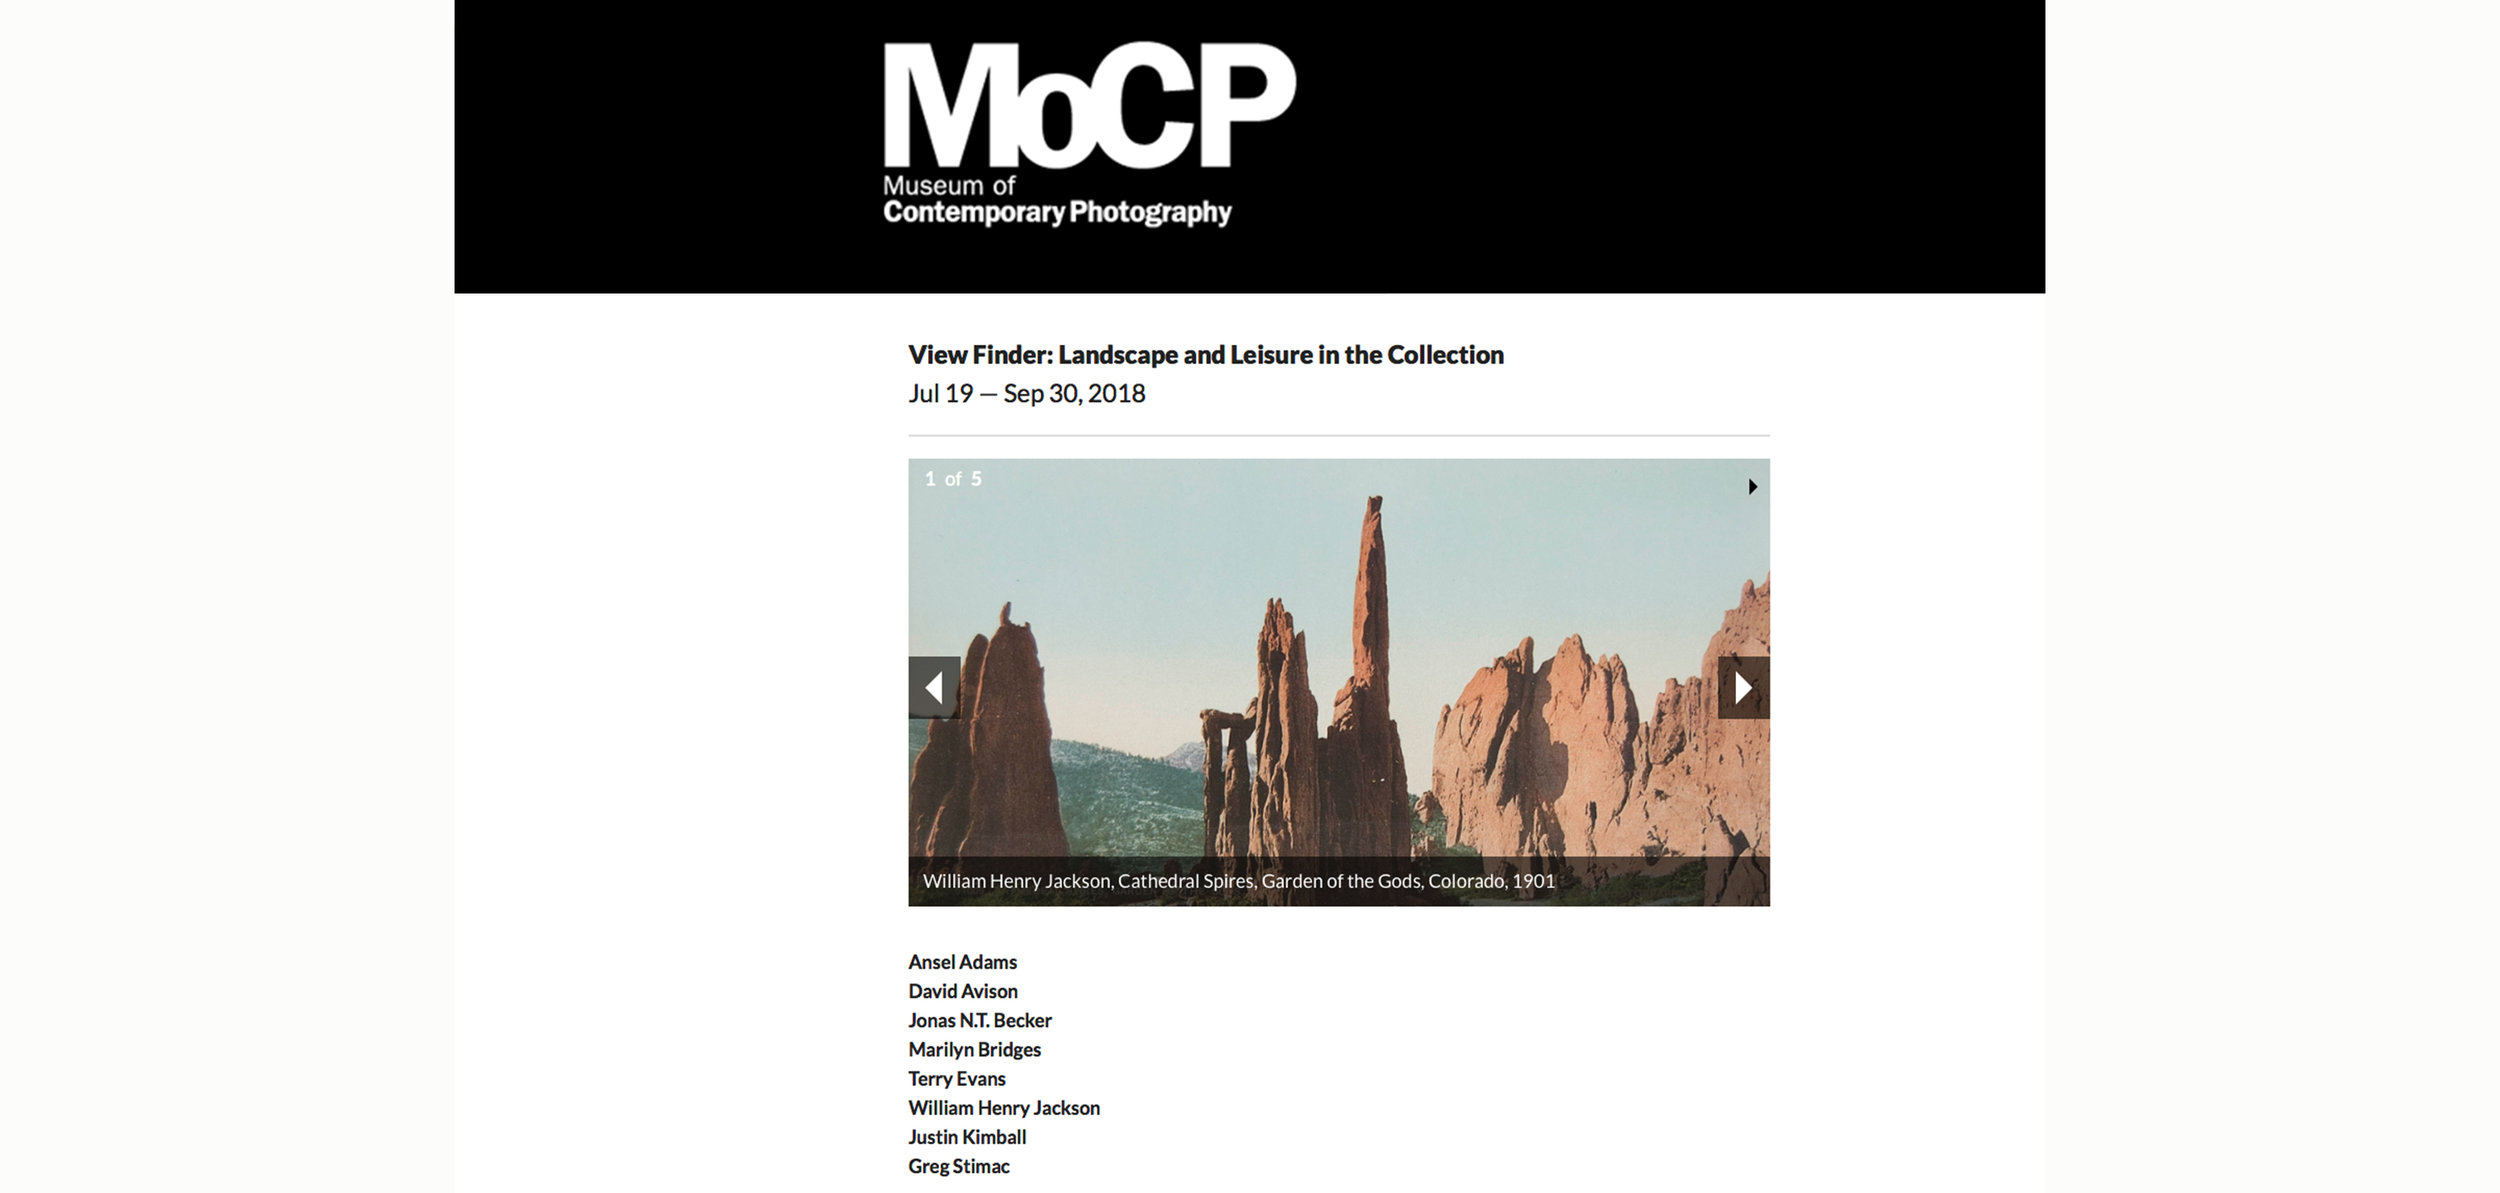 Copy of Upcoming Exhibition at the Museum of Contemporary Photography, Opens July 19, 2018